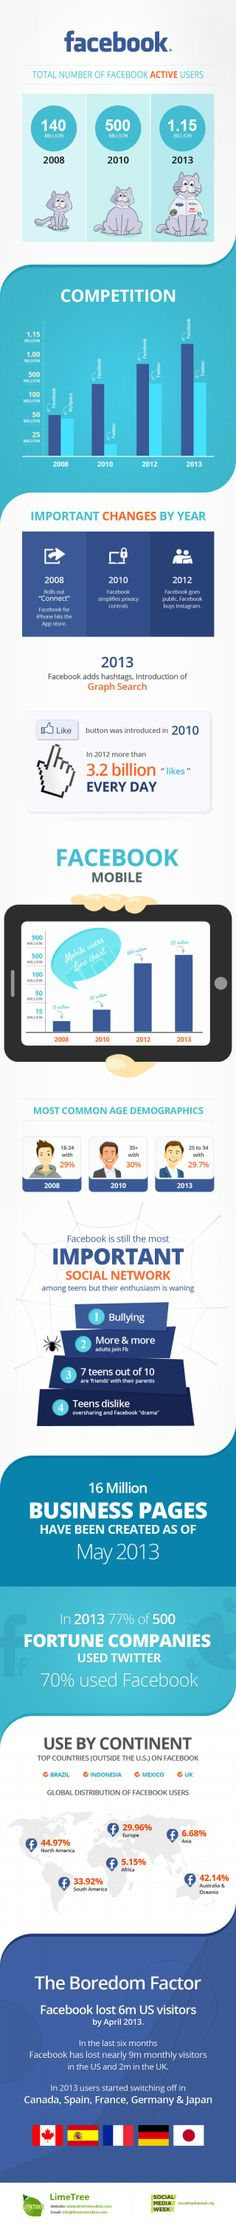 Infographic | FaceBook - Number of active users: #infographic #socialmedia #Facebook